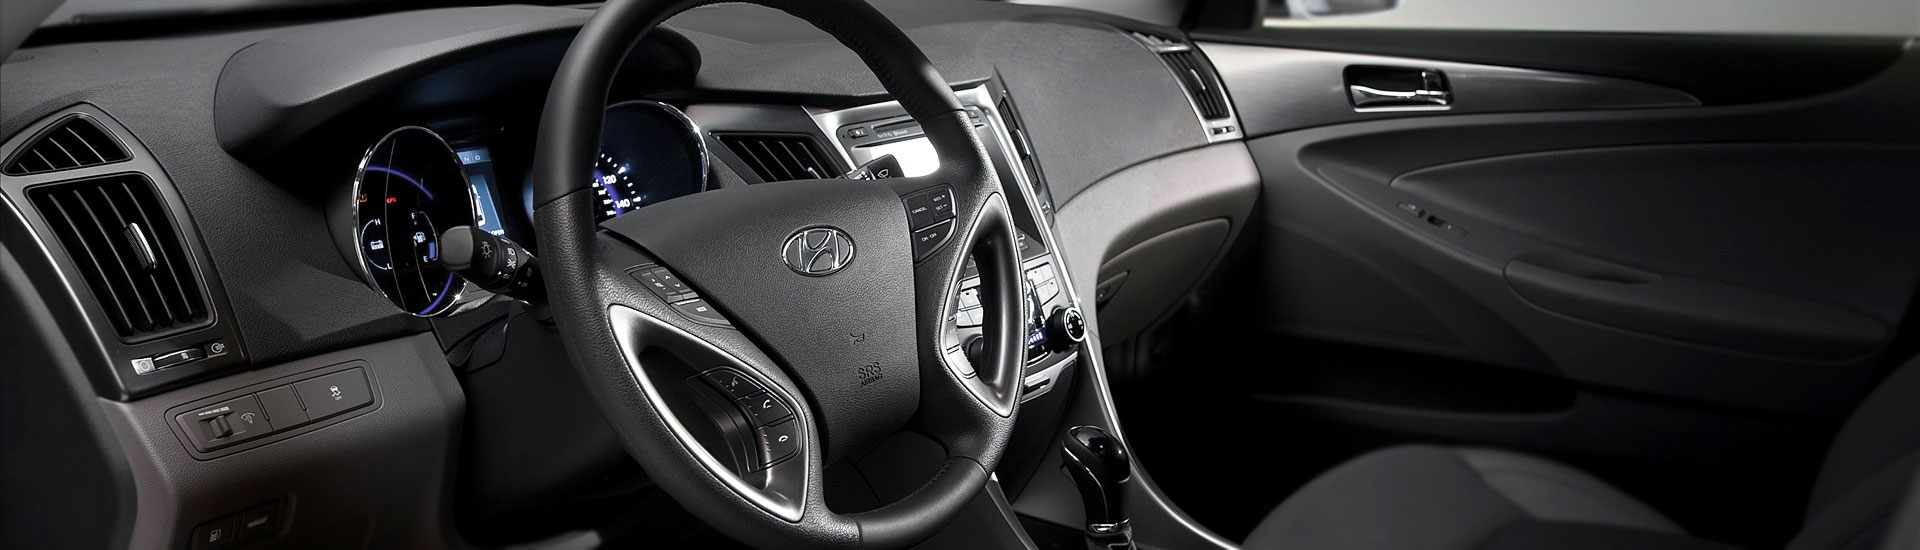 Hyundai Sonata Custom Dash Kits